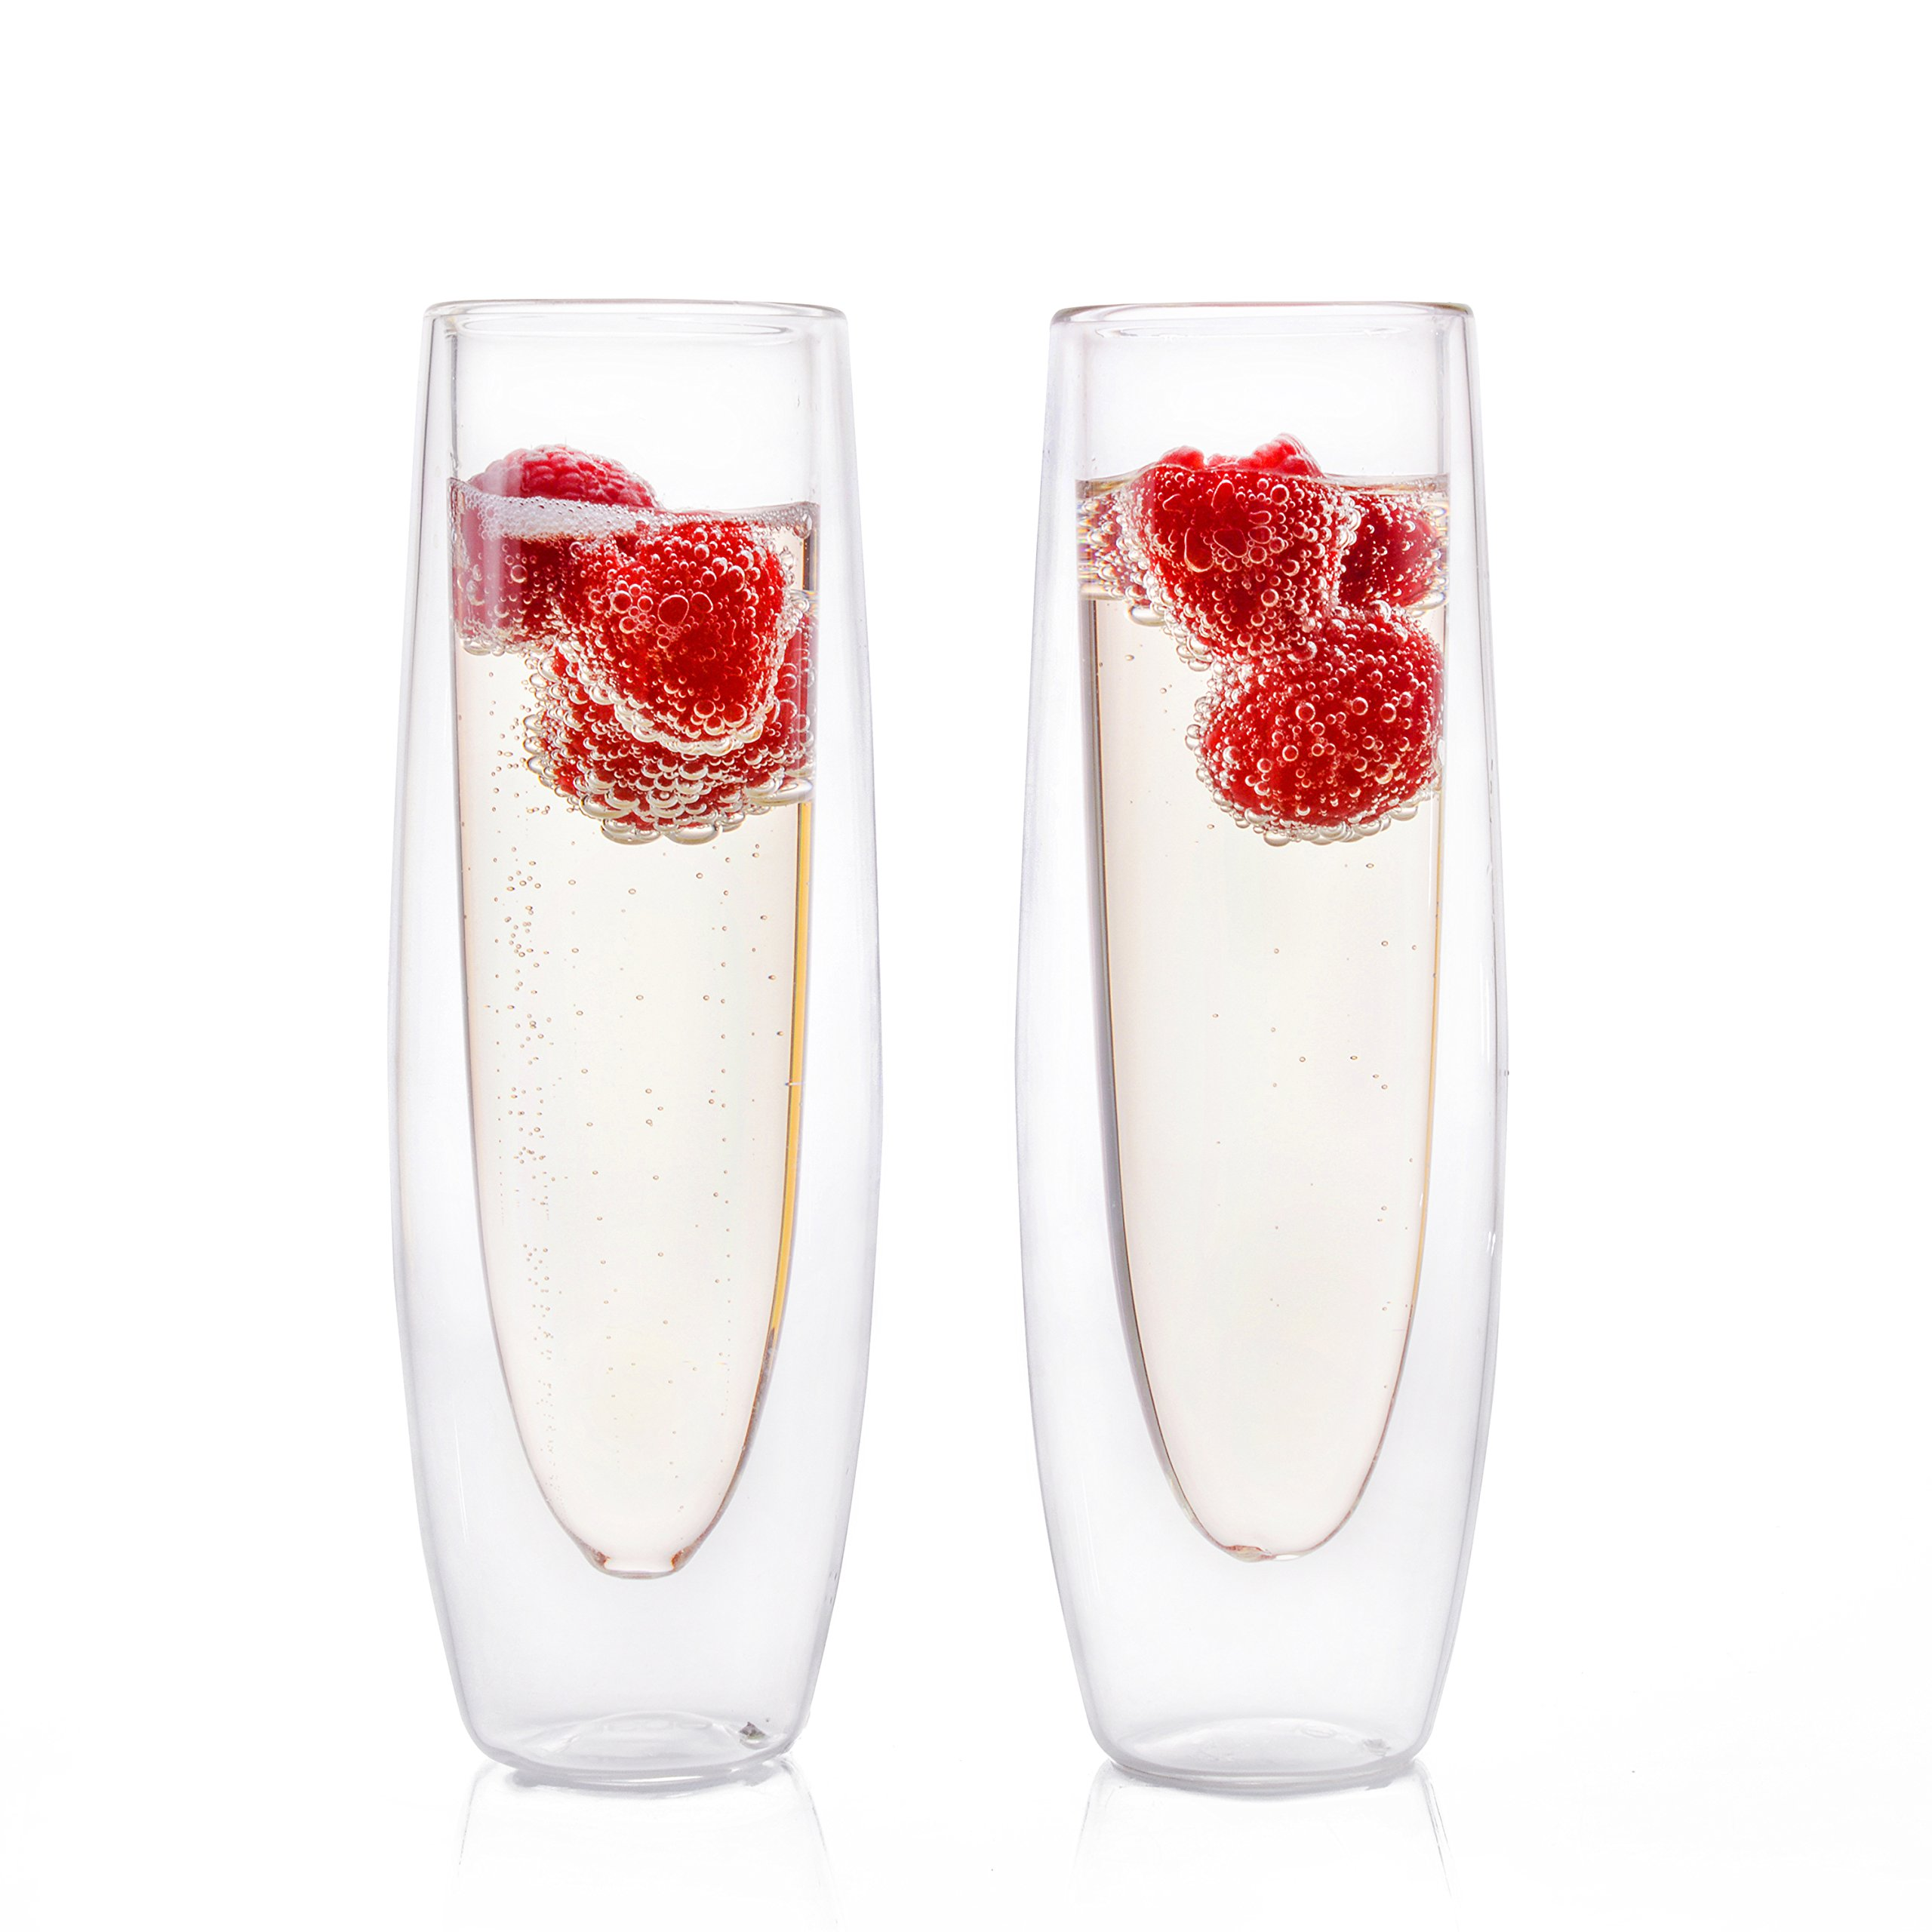 Eparé Champagne Flutes, Insulated Stemless Glass Set(5 oz, 150 ml) –Flute Glass for Brunch Wine & Wedding Cocktails – Reusable Party Cups -2 Glasses